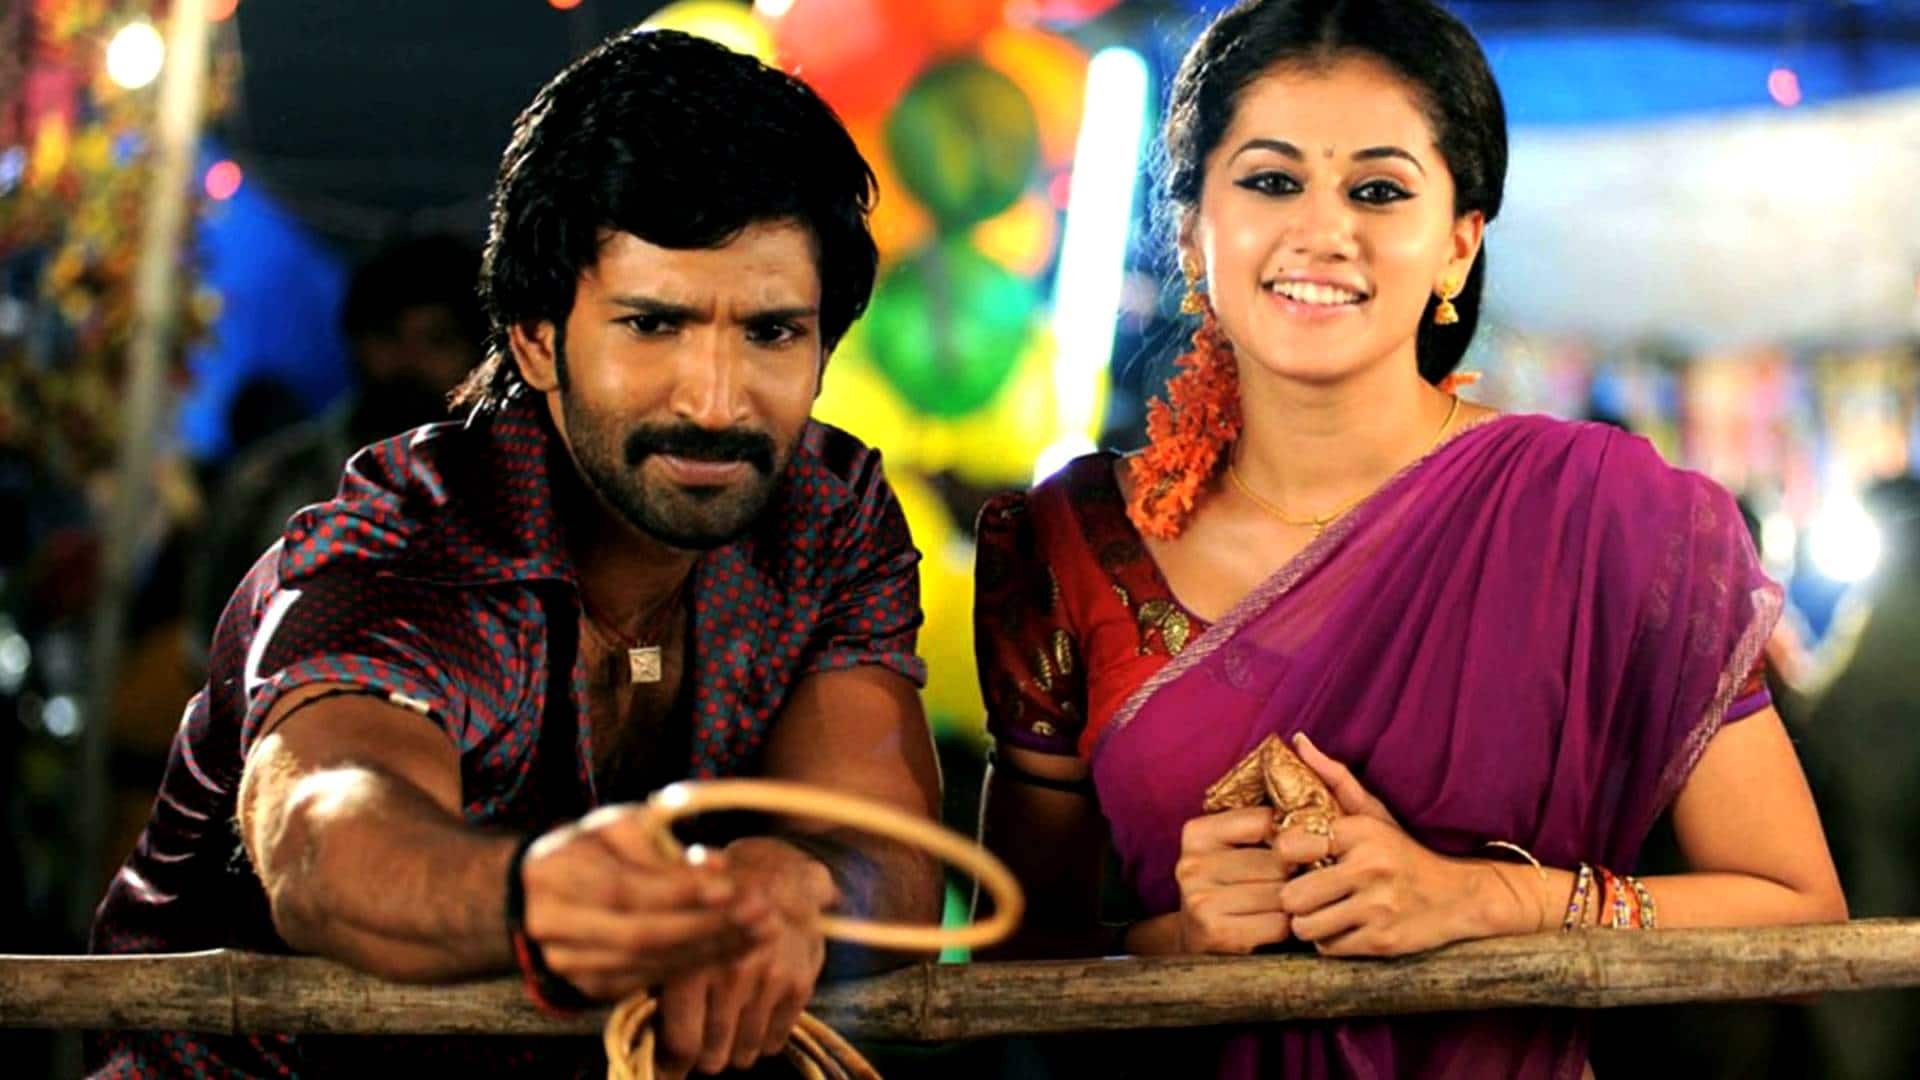 Aadhi And Tapsee Pannu To Reunite For Hari's Next Flick